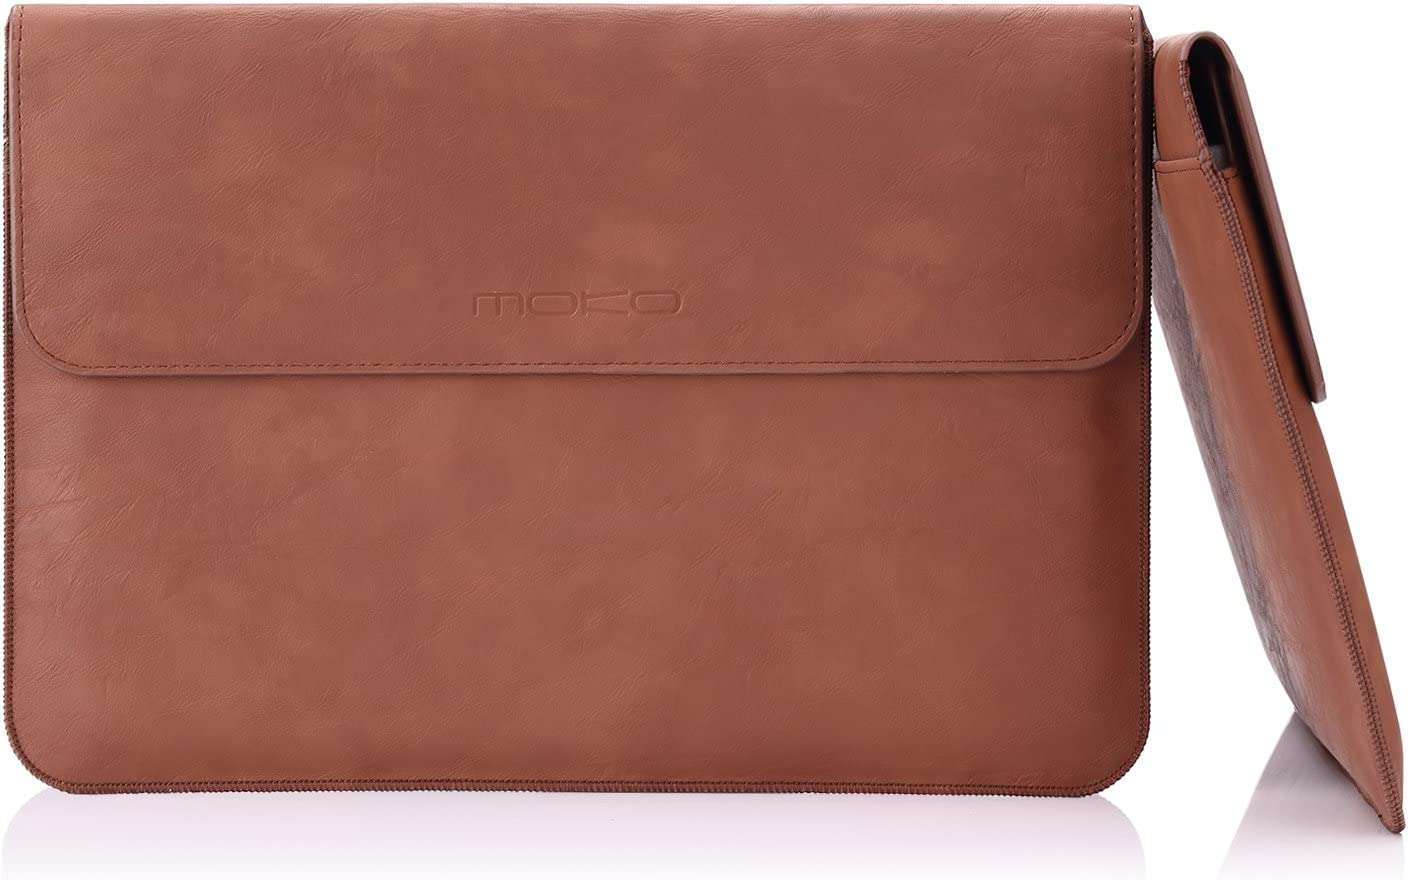 MoKo Laptop Sleeve Fits MacBook Pro 16 Inch 2019, PU Leather Envelope Case for MacBook Pro 15 inch, Water-Resistant Notebook Bag with Document Pocket and Built-in Card Slot, Brown